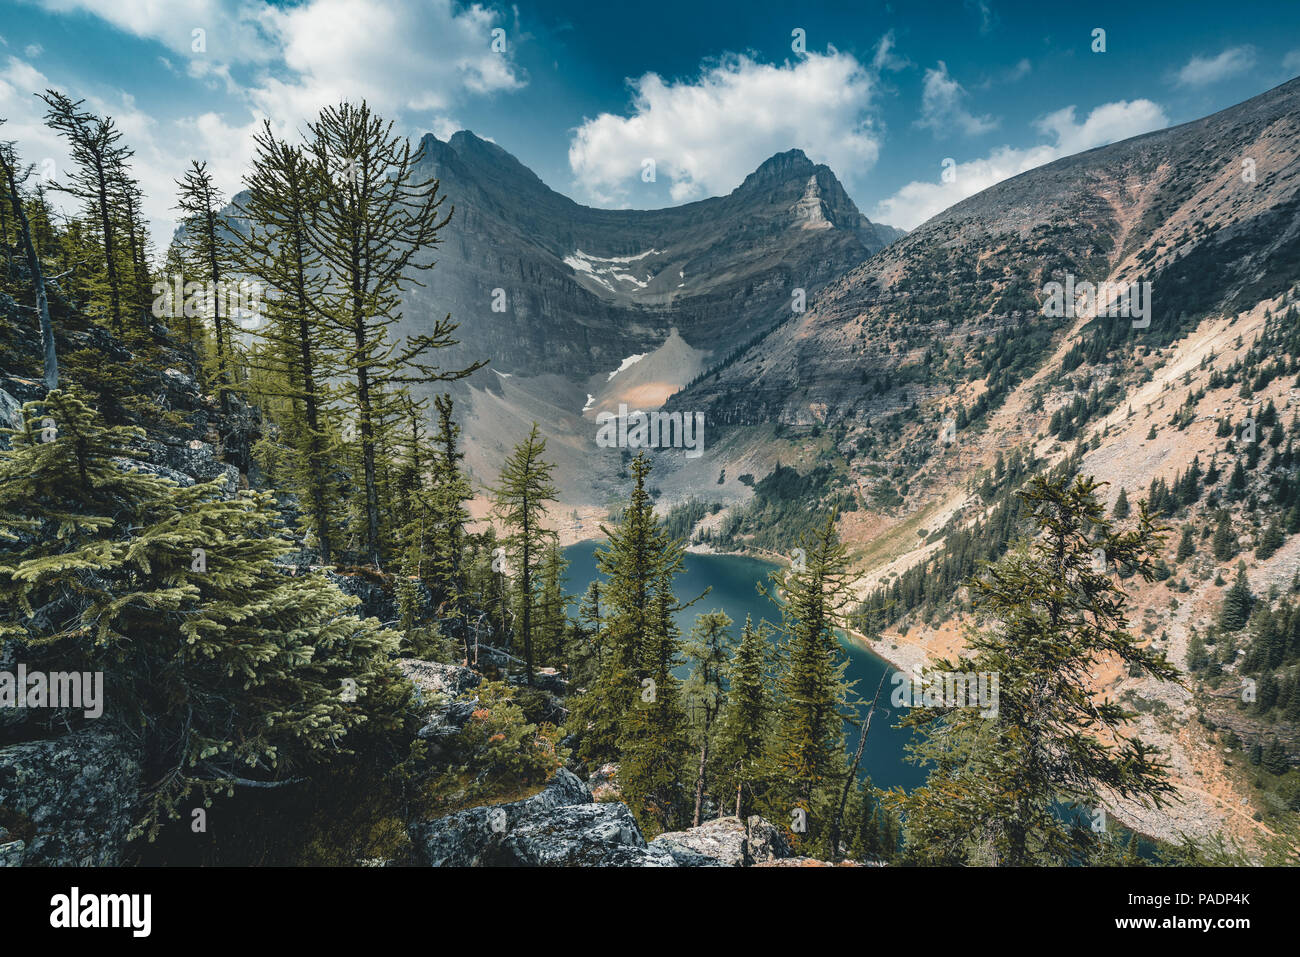 Mount Saddle and Lake Agnes. Photo taken in Banff National Park, - Stock Image